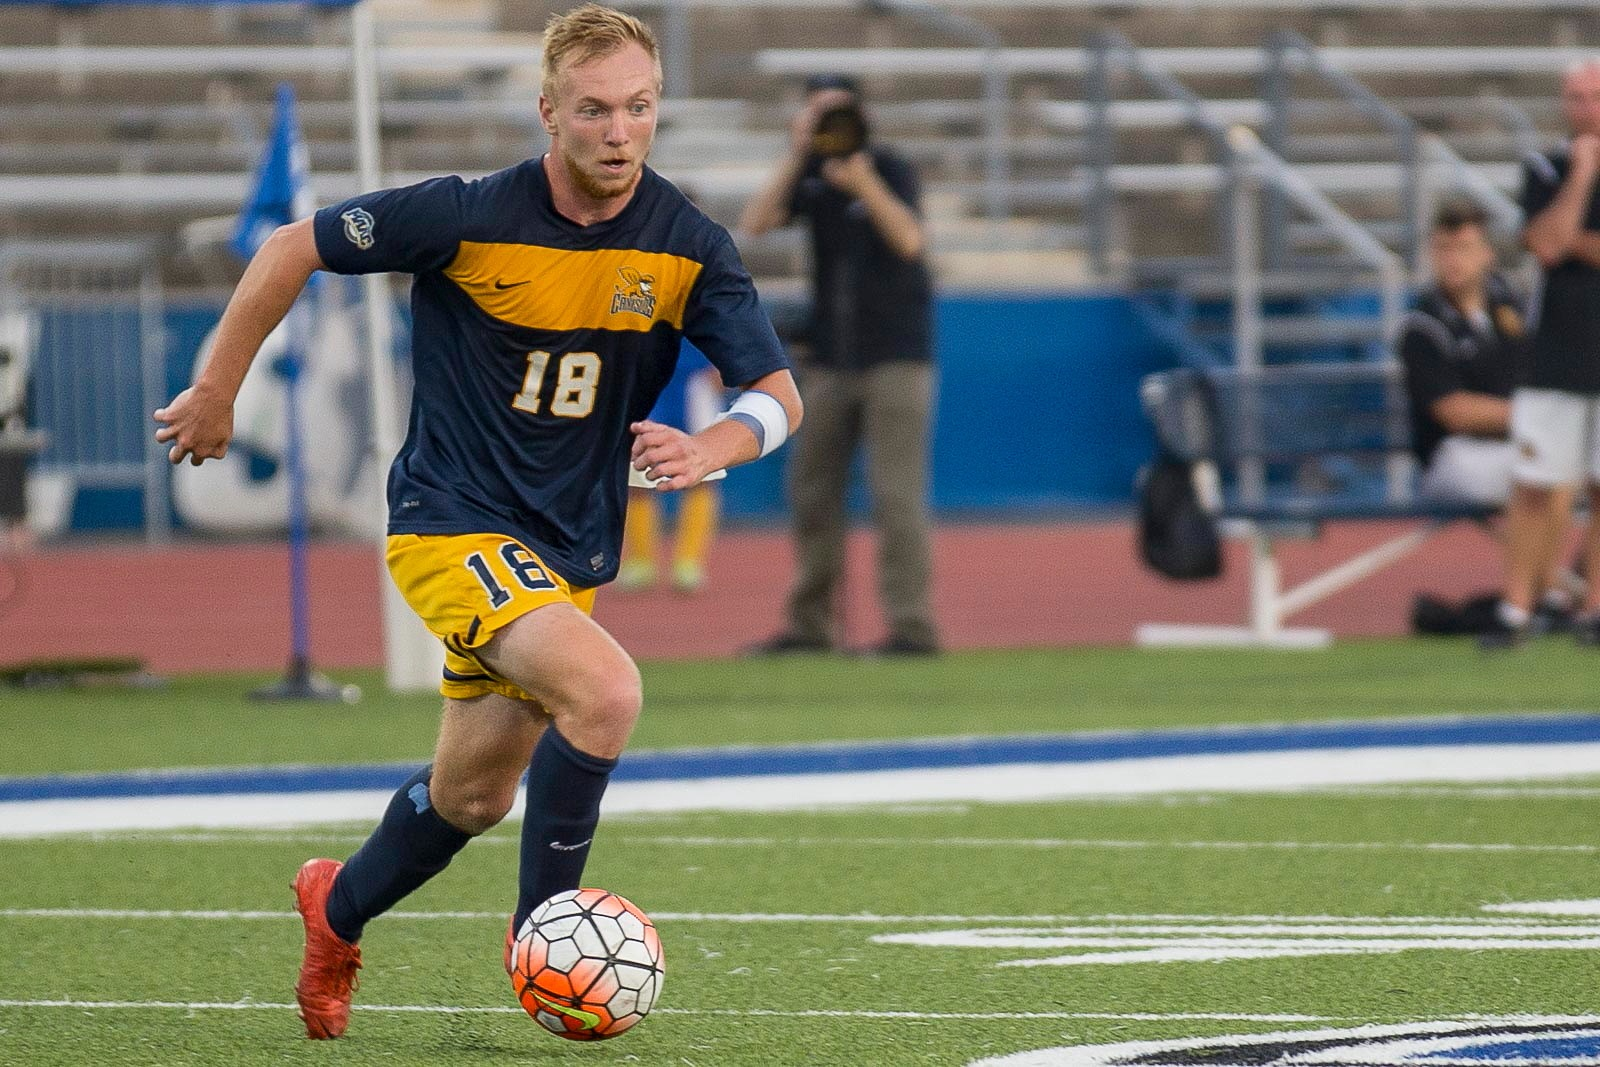 Former Canisius midfielder Chris Berardi has moved from Celtic United to Clarence Yotes. (Don Nieman/Special to The News)